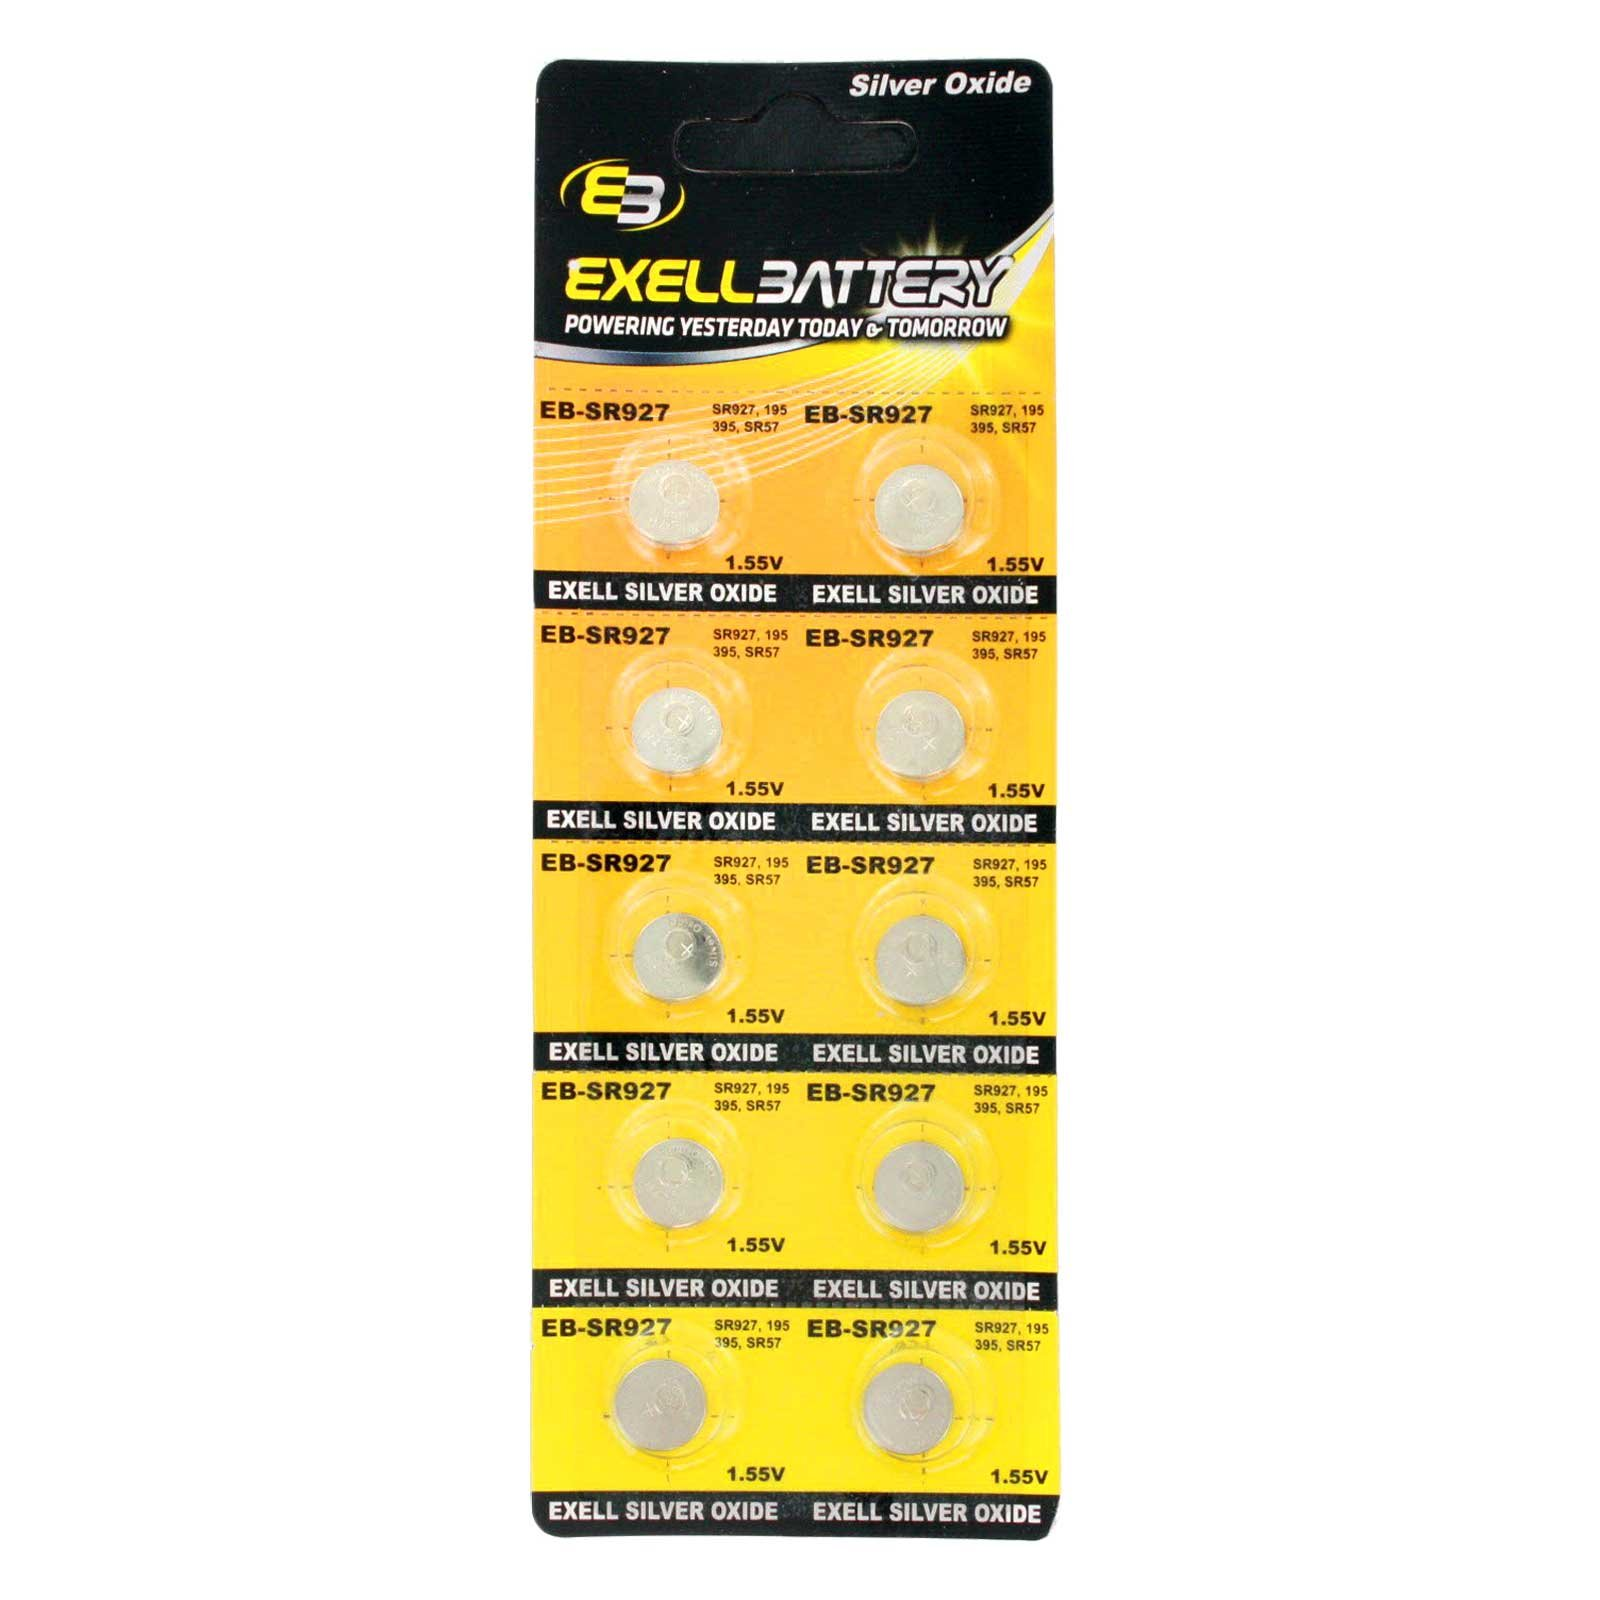 Cheap 10pk Exell EB-SR927 Silver Oxide 1.5V Watch Battery Replaces 395/399 Black Friday & Cyber Monday 2019